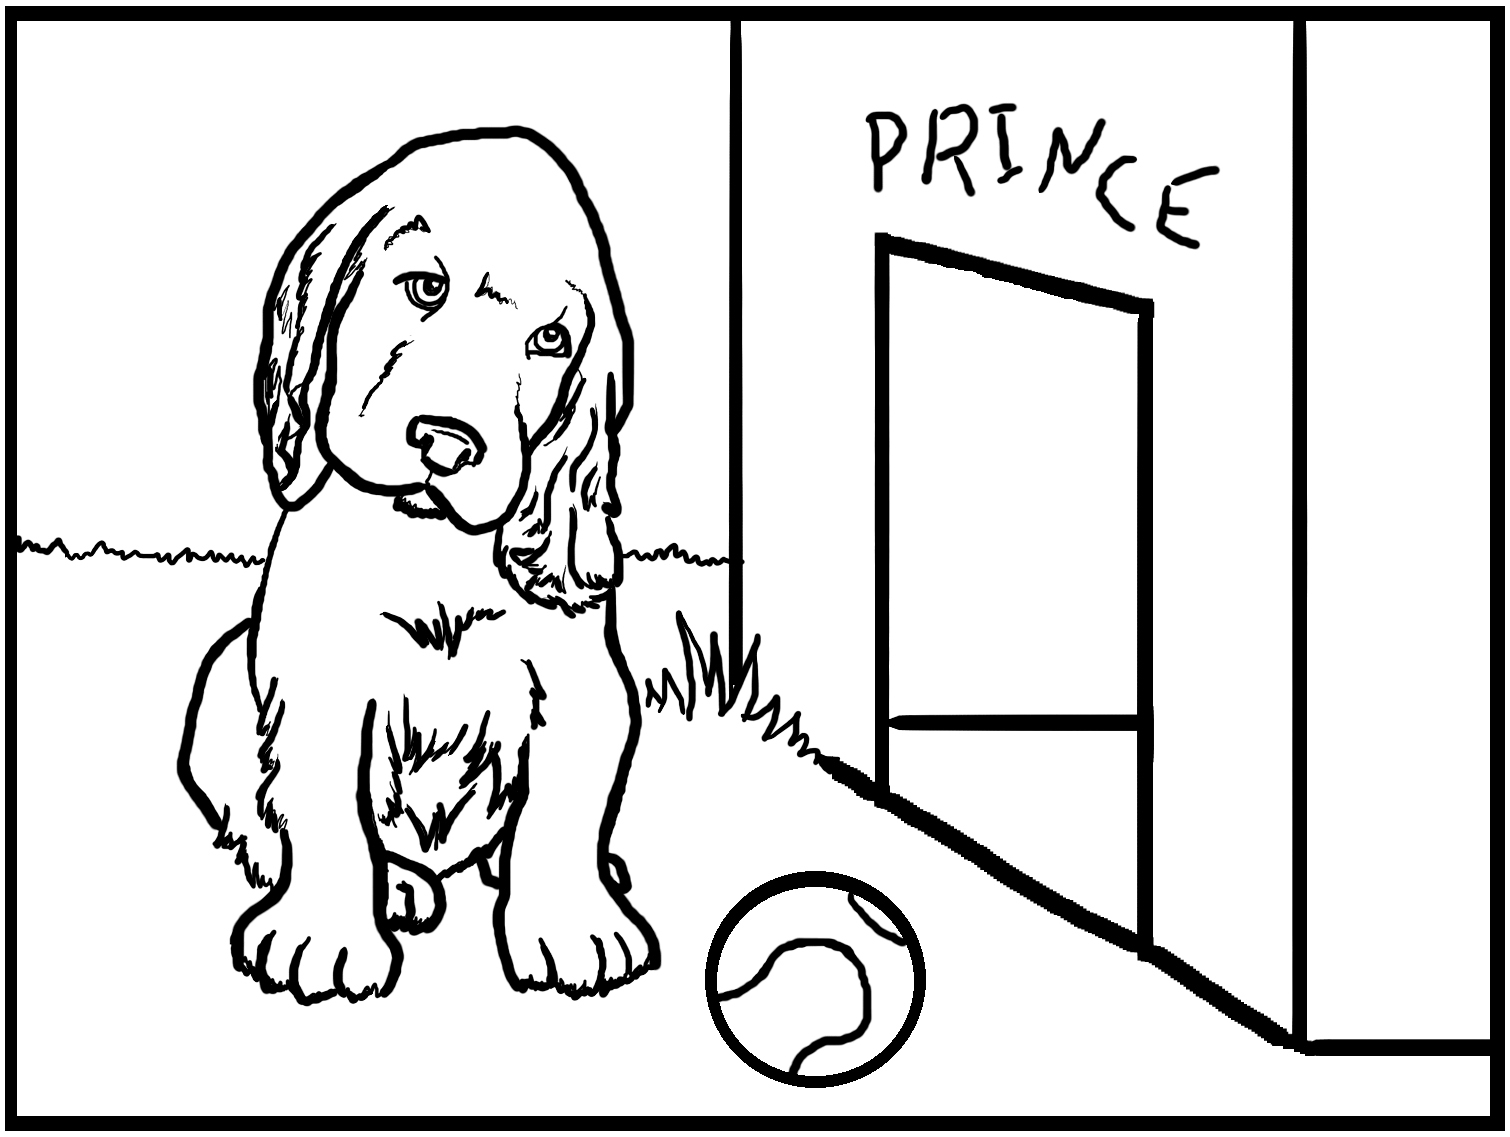 childrens coloring pages with puppies - photo#20